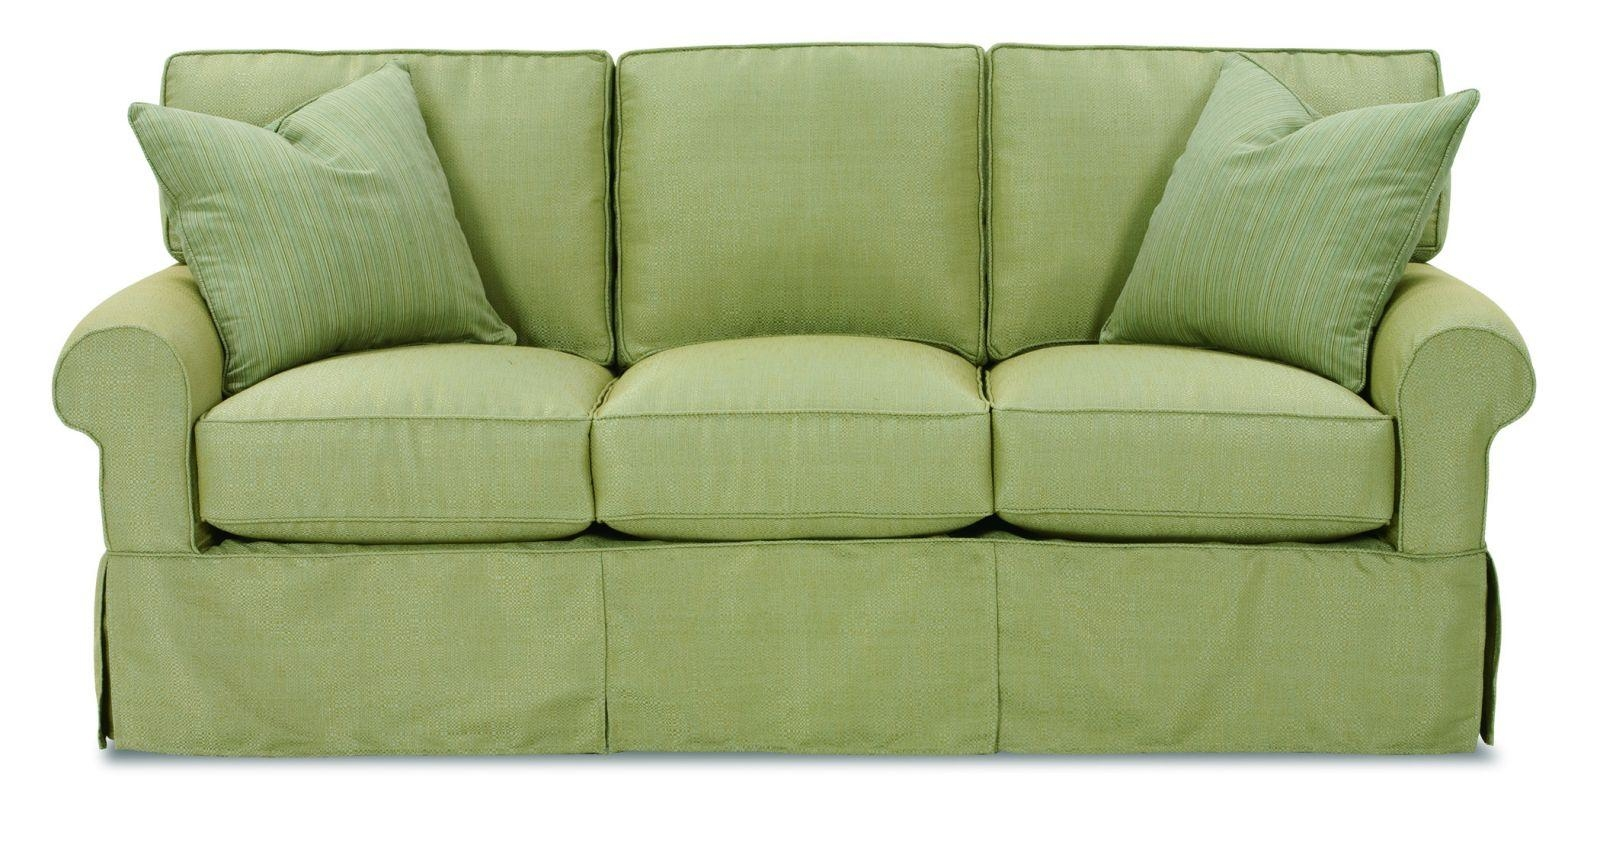 Inspiration Idea Green Sofa Slipcover With Sage Green Loden With Green Sofa Chairs (Image 14 of 20)